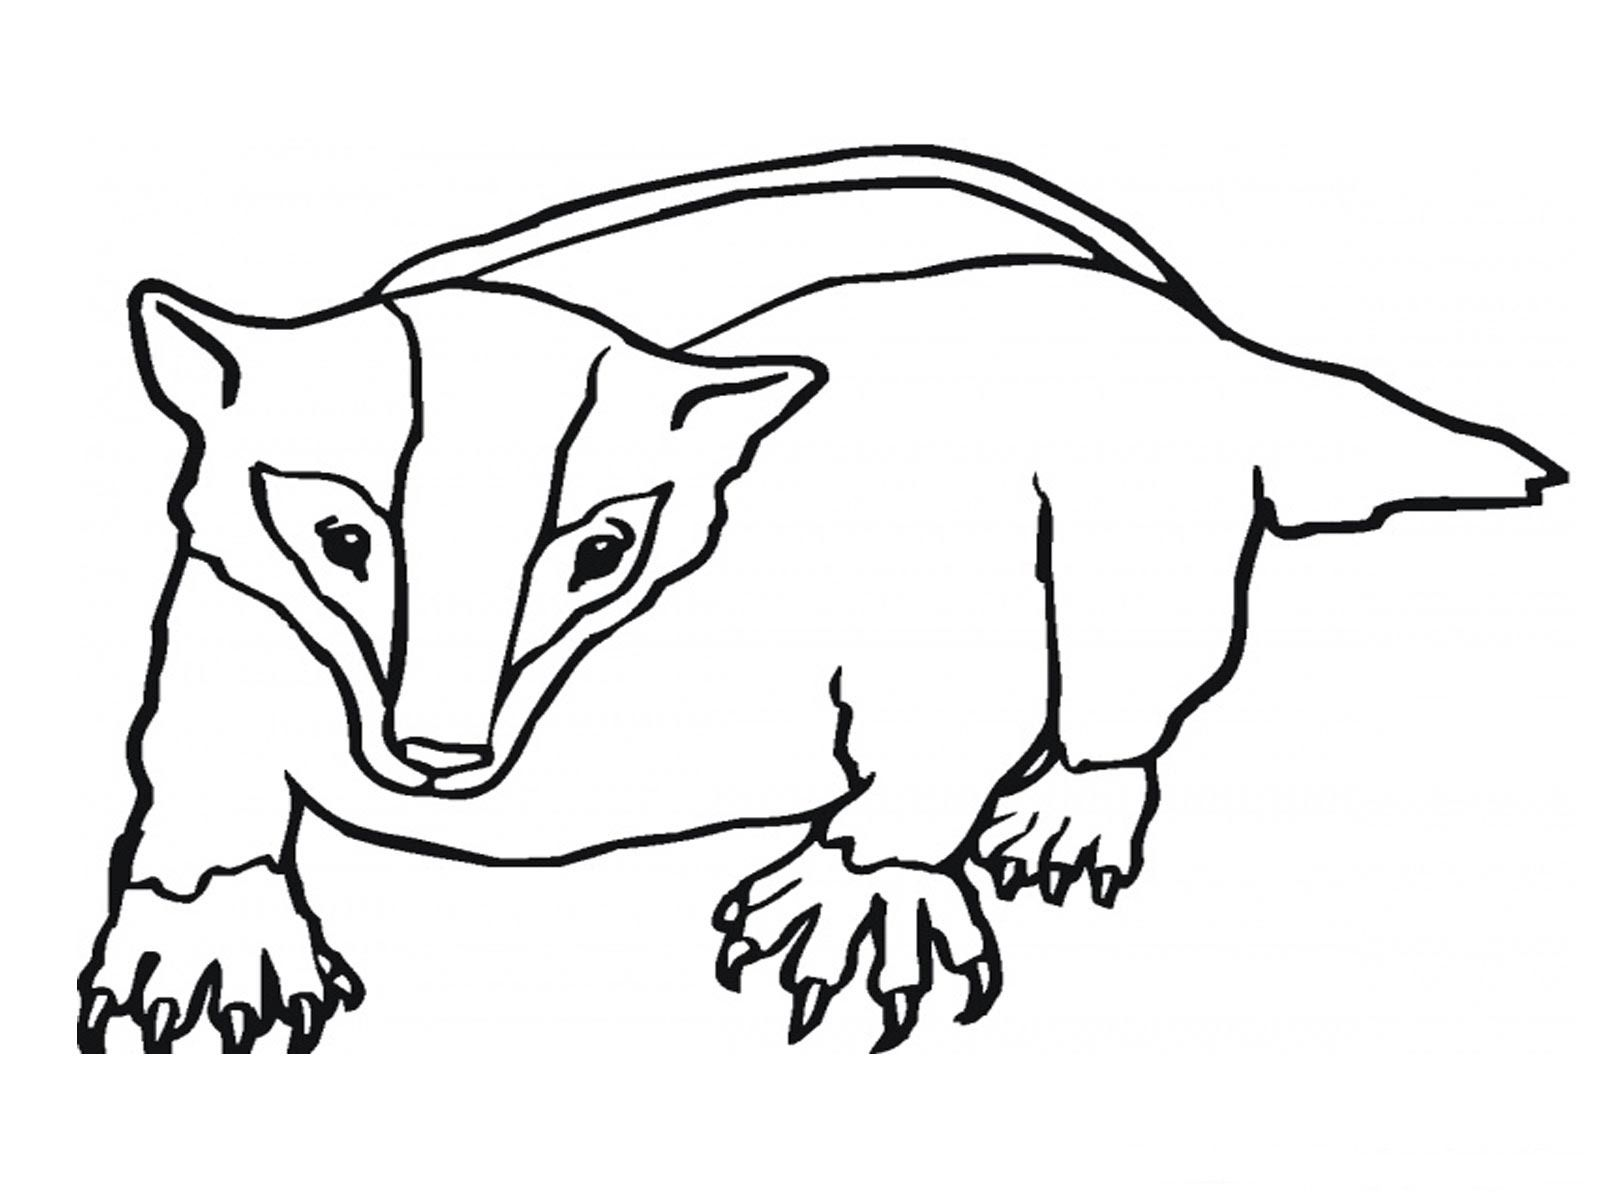 Badger Printable Coloring Pages Animal Coloring Pages Coloring Pages Cartoon Coloring Pages